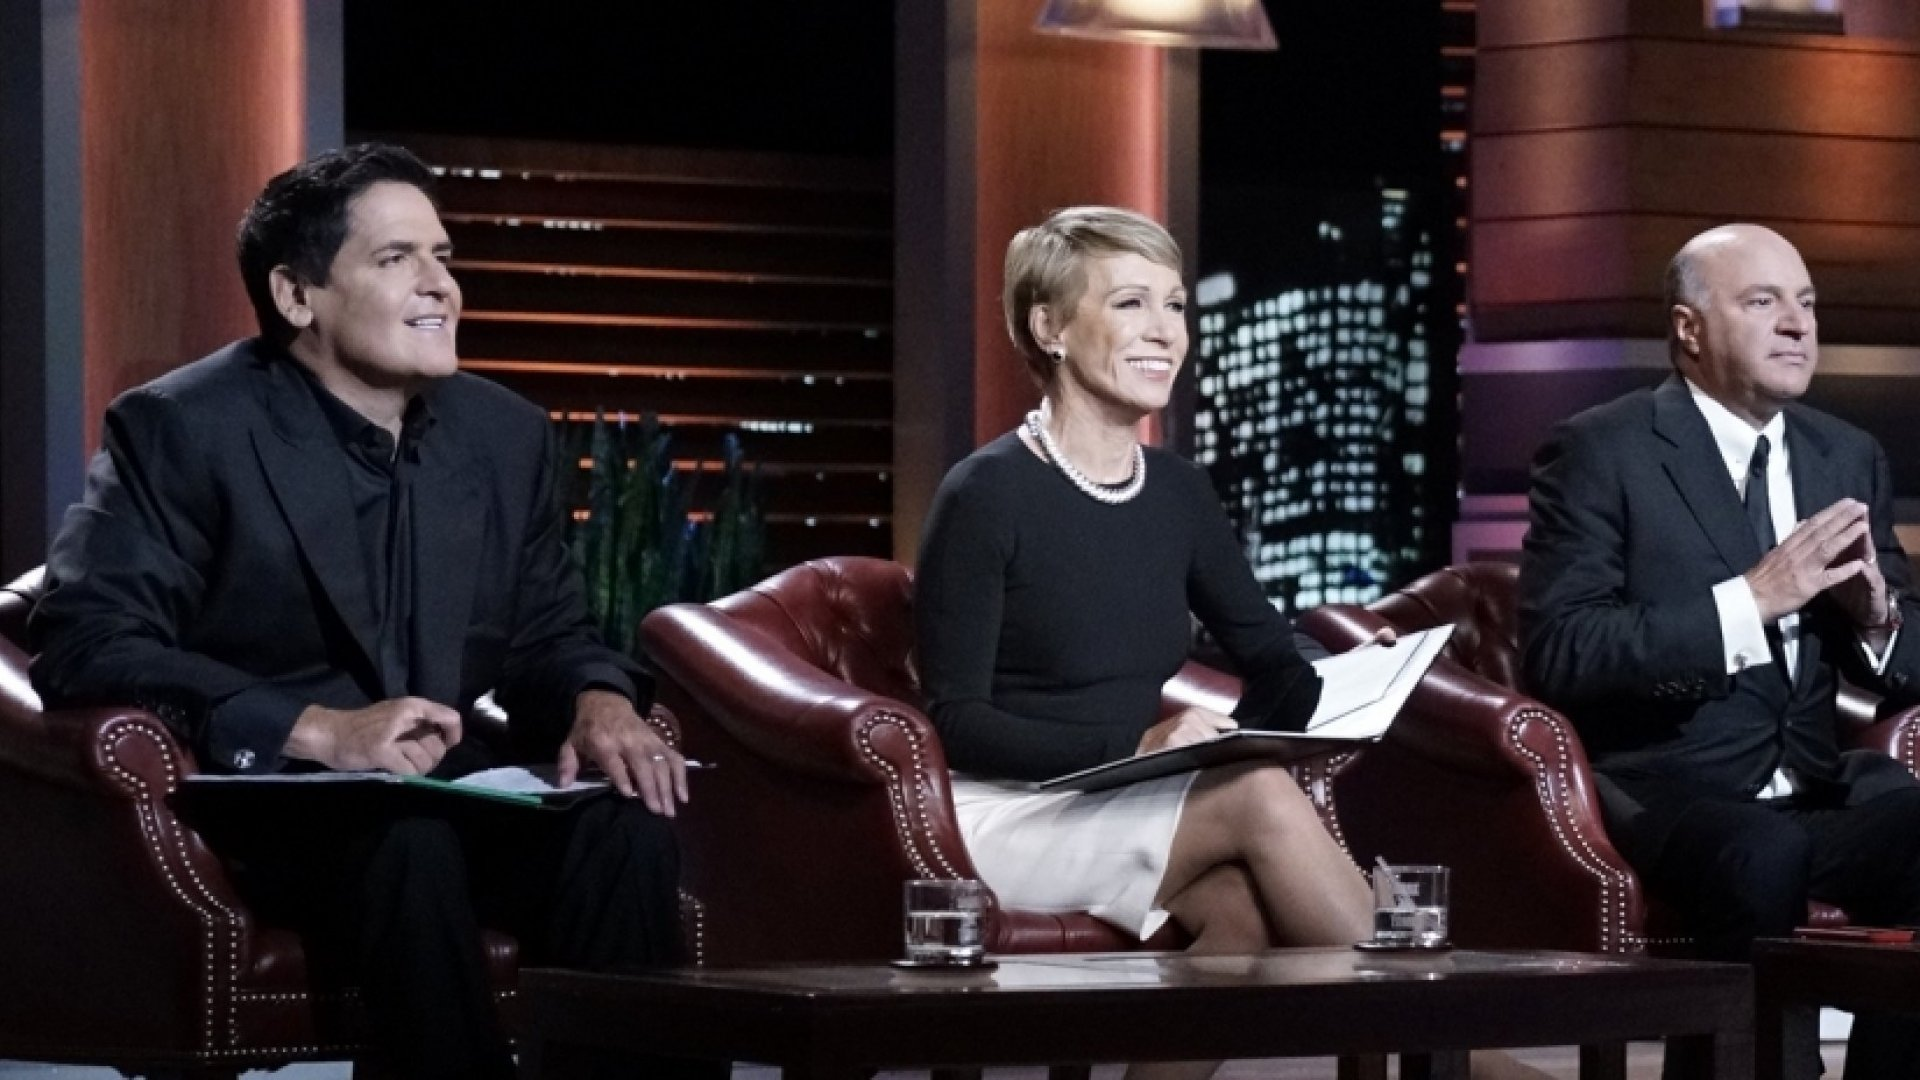 Barbara Corcoran's Best Business Advice (According to Her 'Shark Tank' Entrepreneurs)